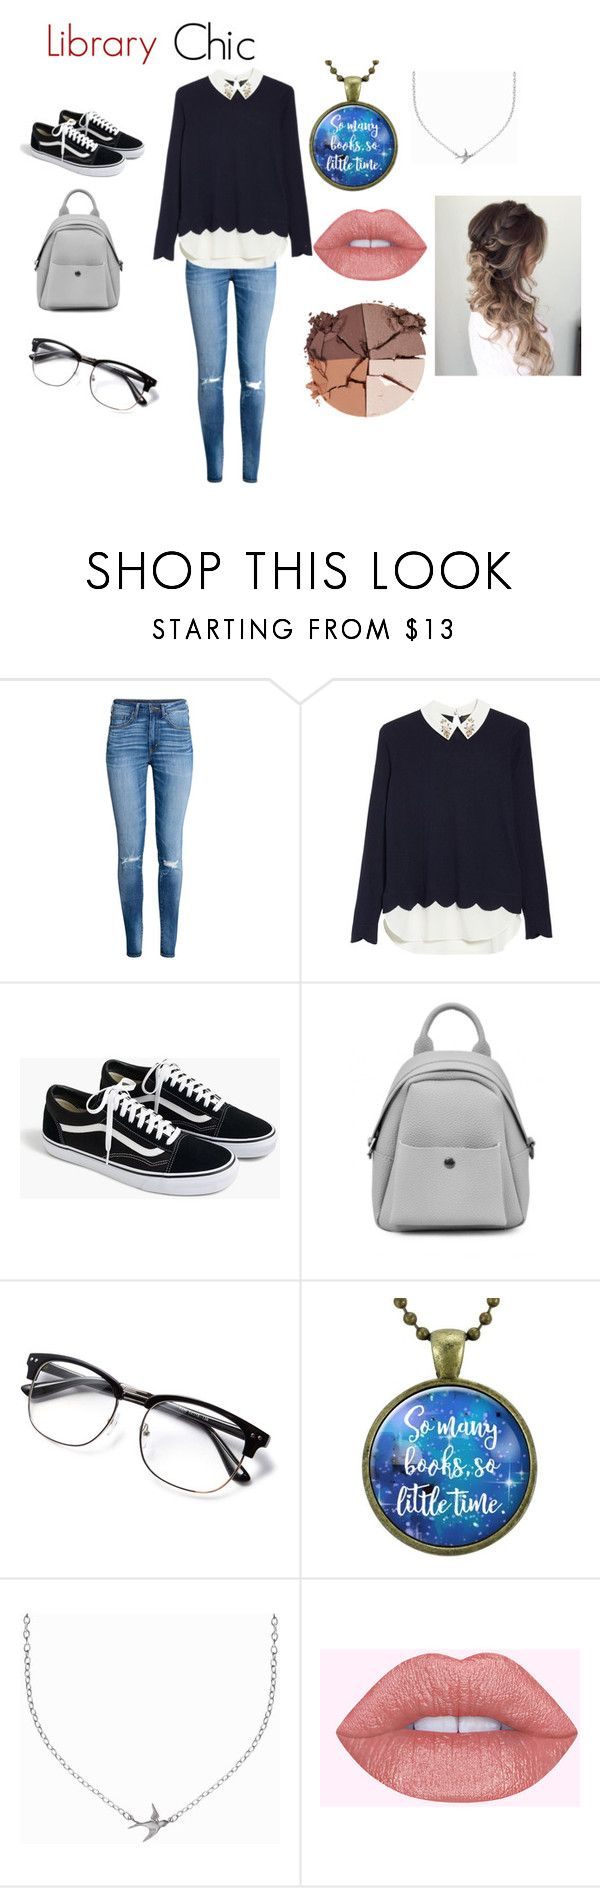 """""""Library chic"""" by hufflepuffprincess101 ❤ liked on Polyvore featuring H&M, Ted Baker, J.Crew, Minnie Grace and lilah b."""